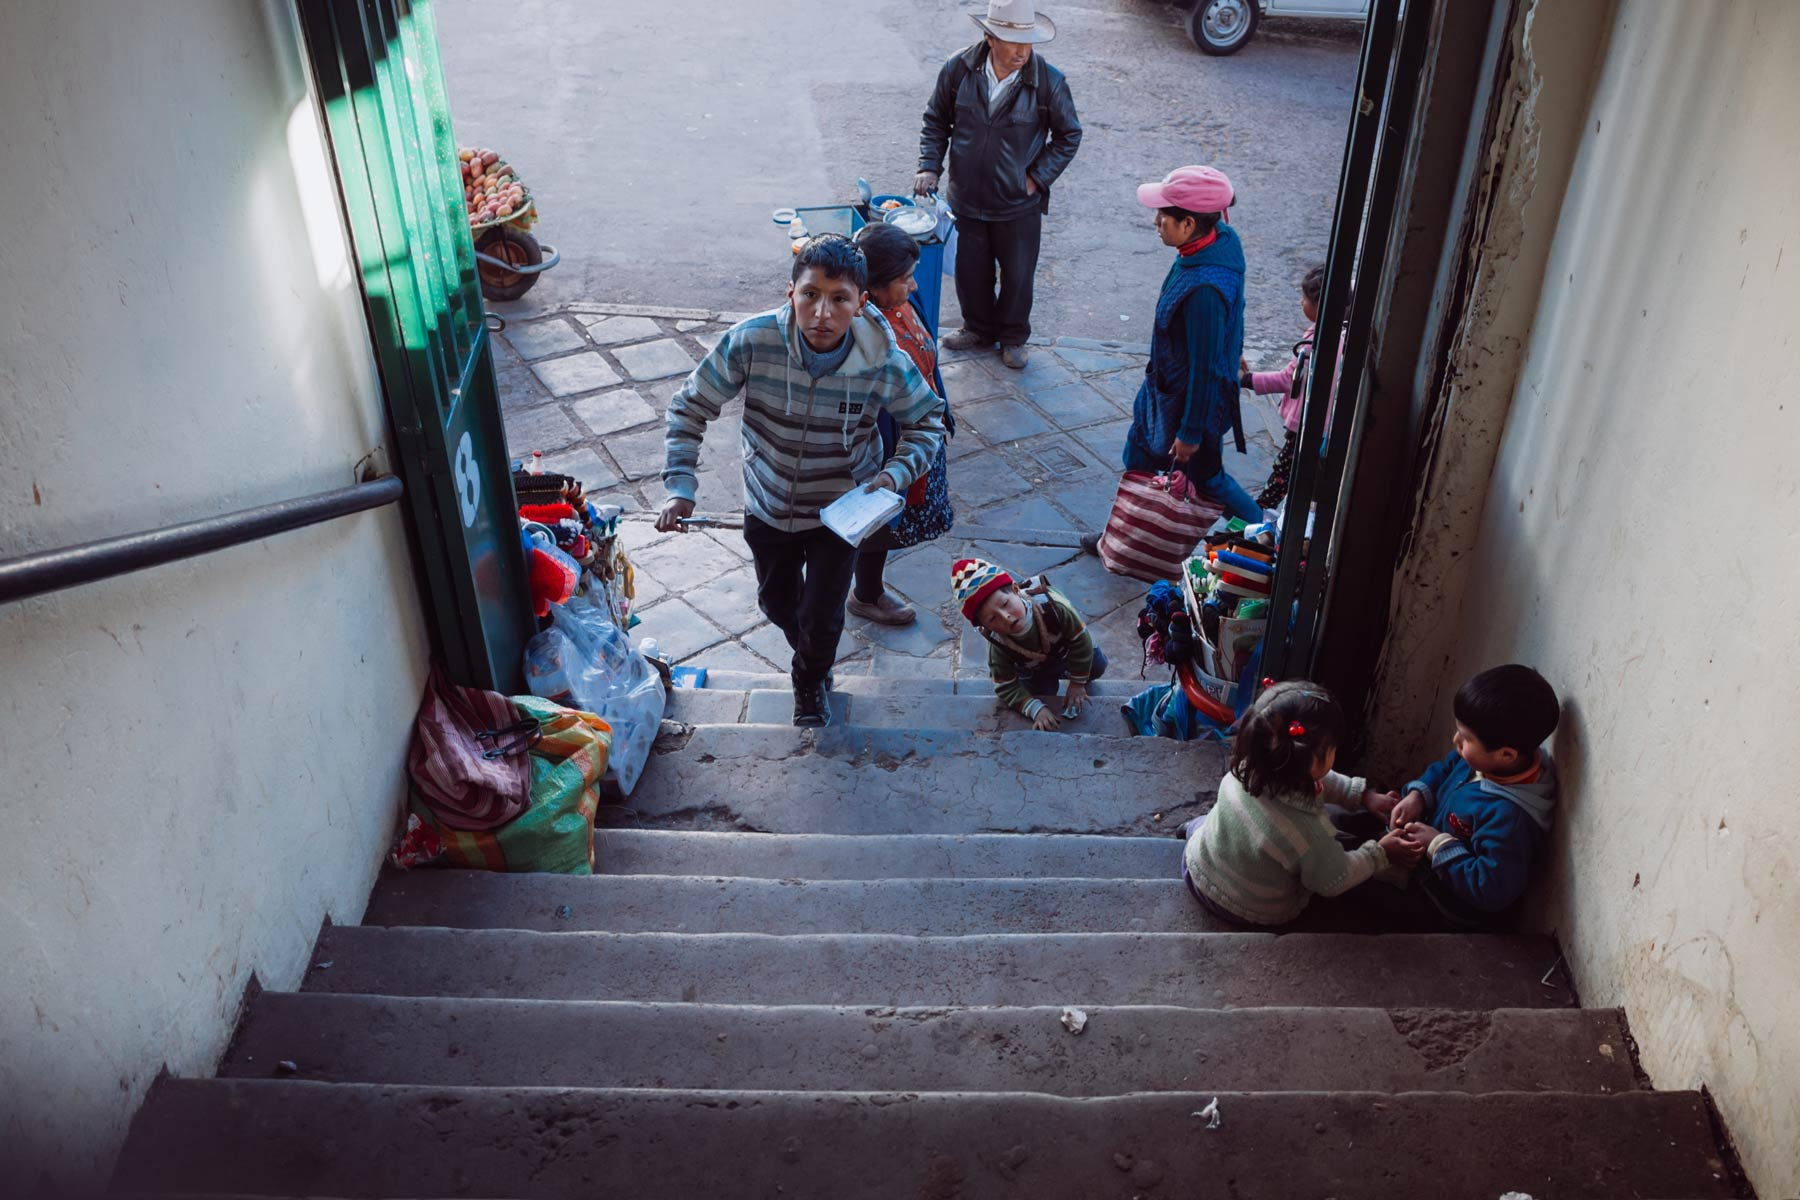 A young boy quickly ascends the steps of a local meat market in Cusco.